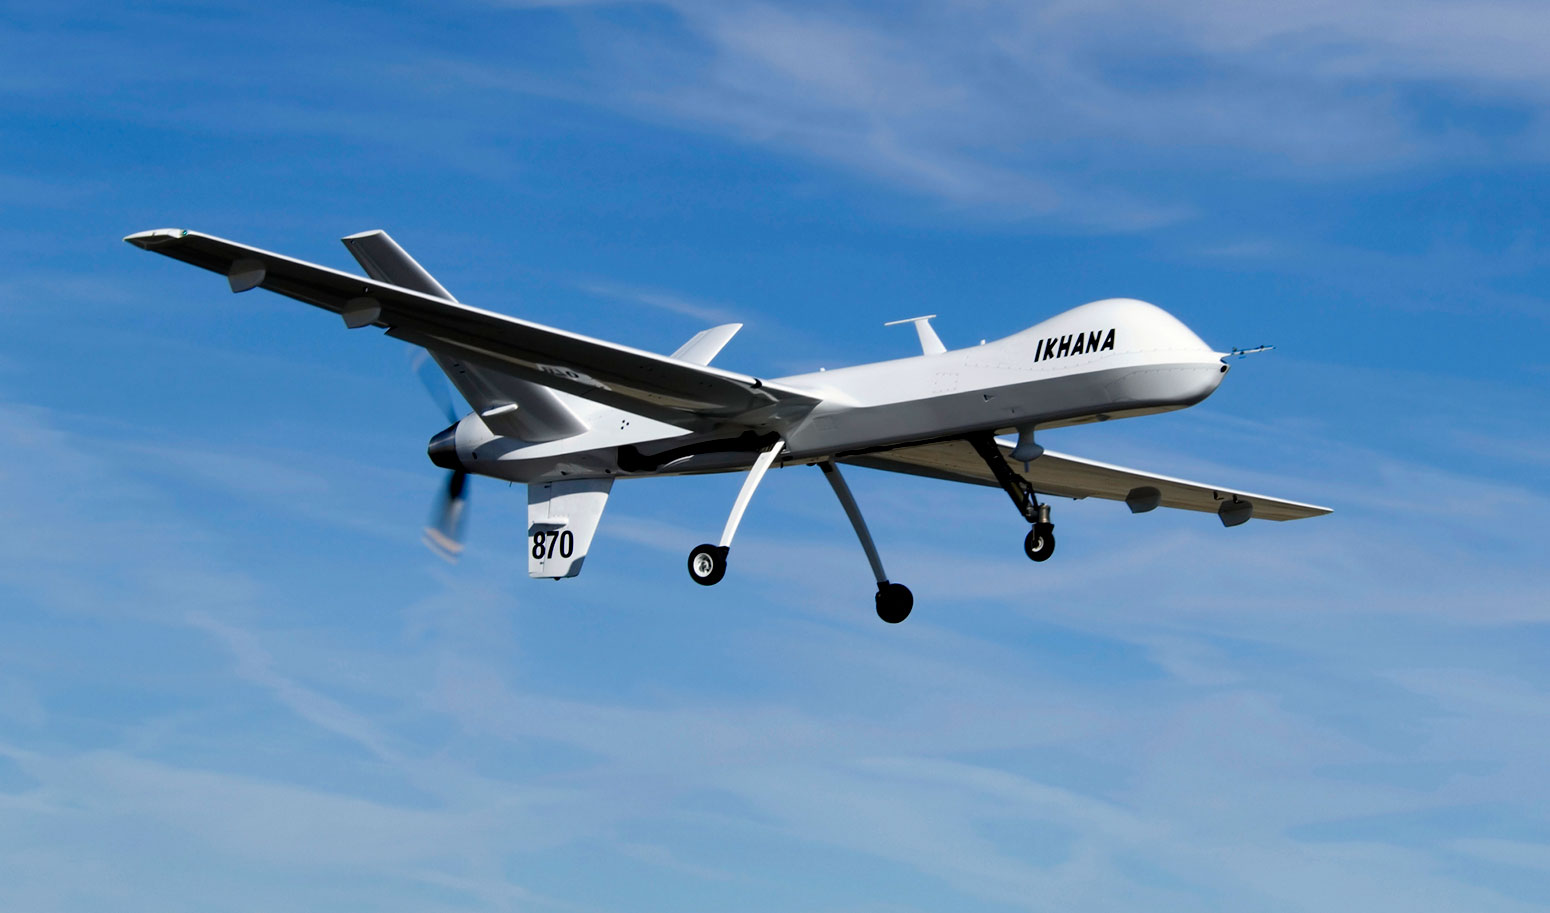 EY-FICCI Report Urged To Deploy Counter Unmanned Aircraft Systems in India